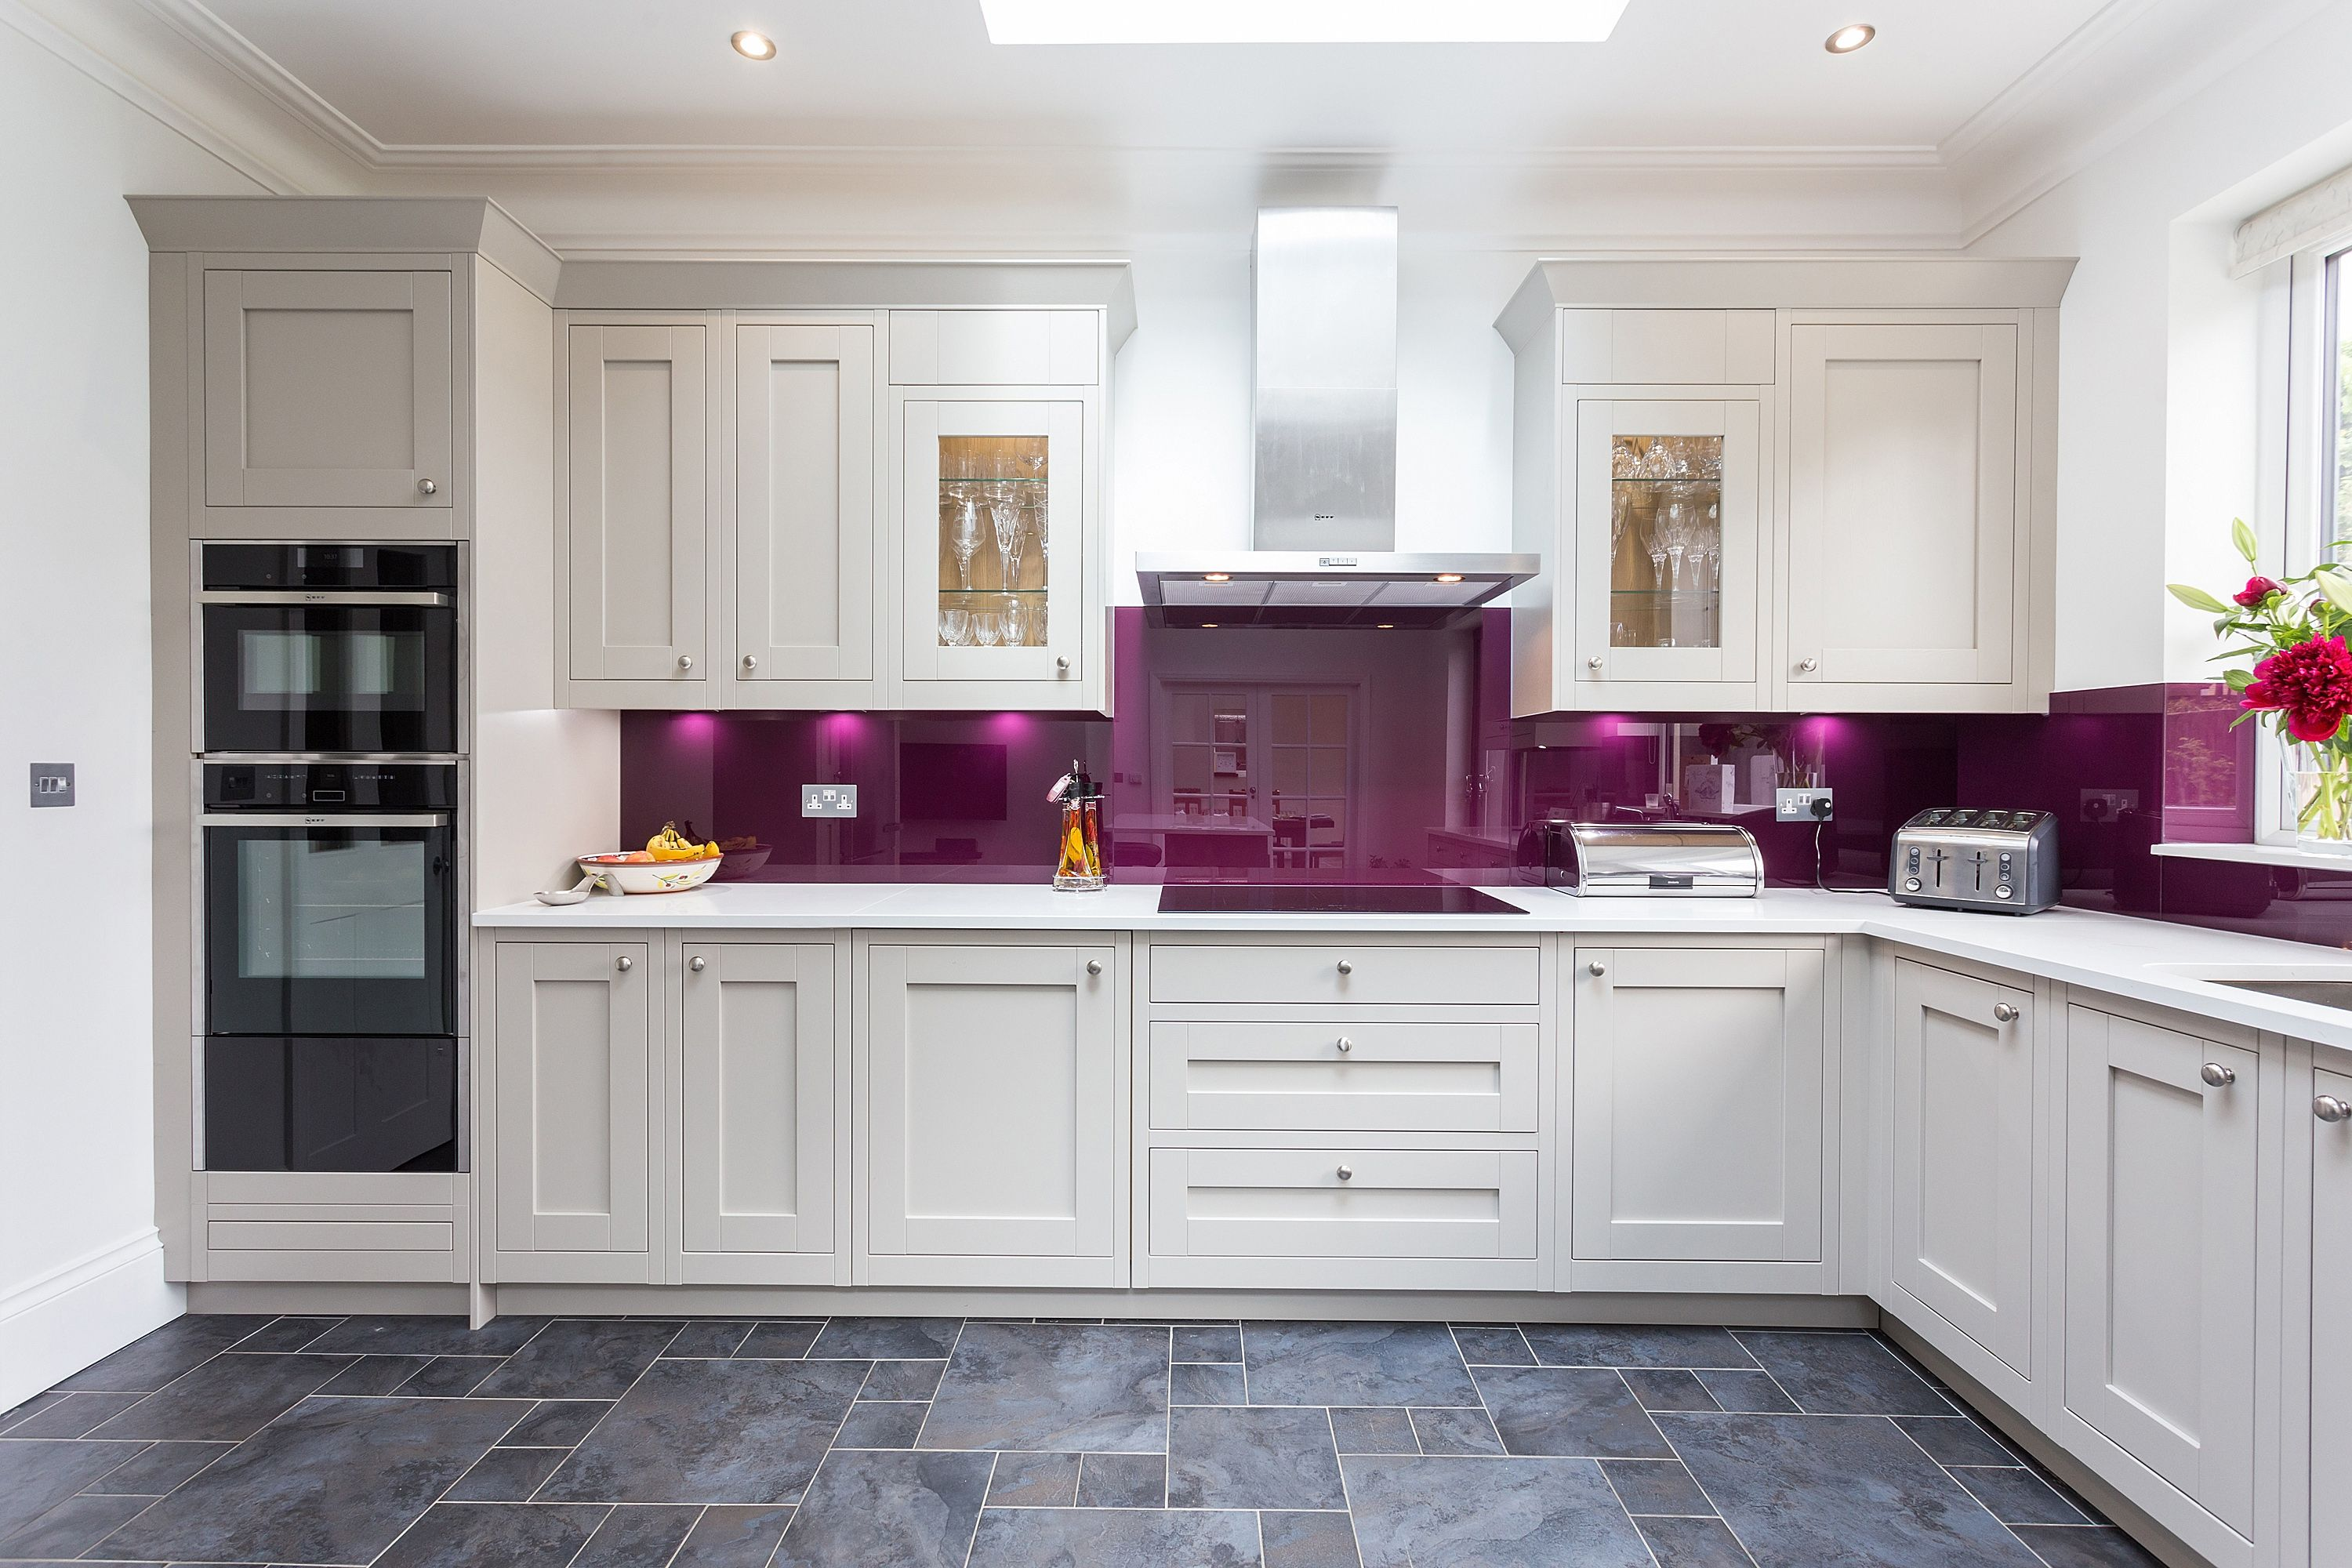 aubergine kitchen tiles second nature milton in frame kitchen in with bold 1386